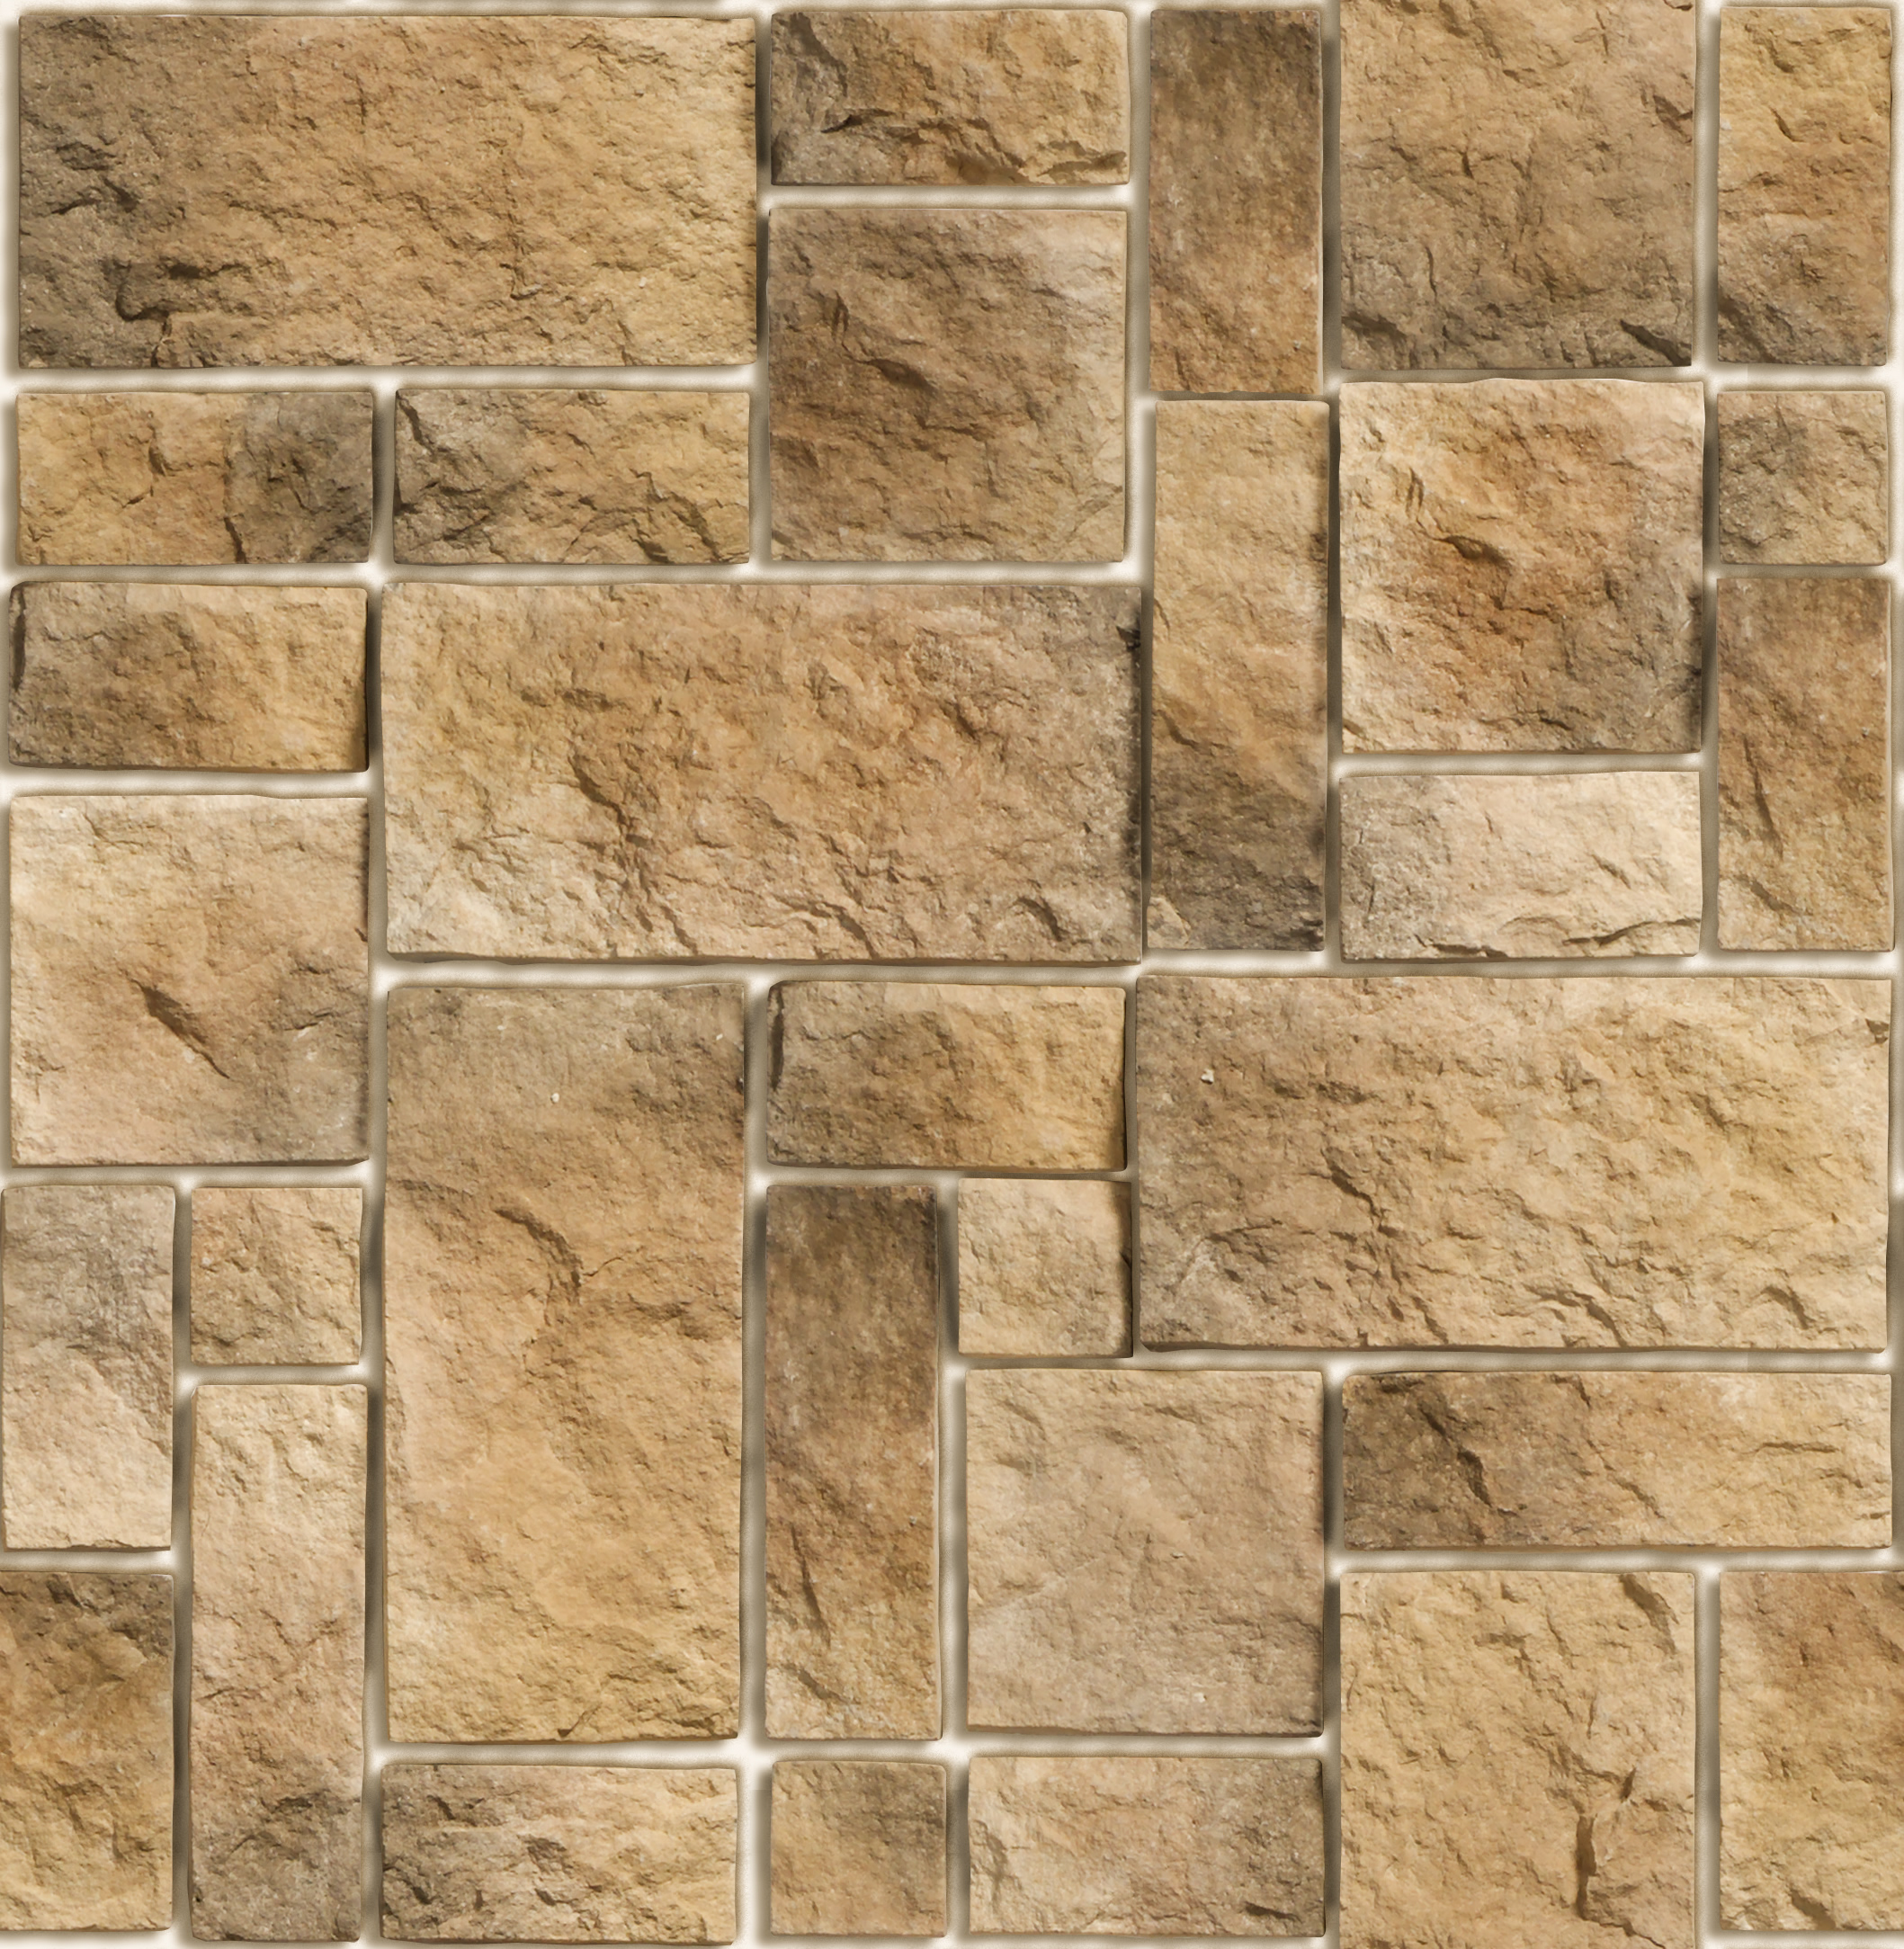 stone tile texture.  Tile Stone Hewn Tile Texture Wall Download Photo With E